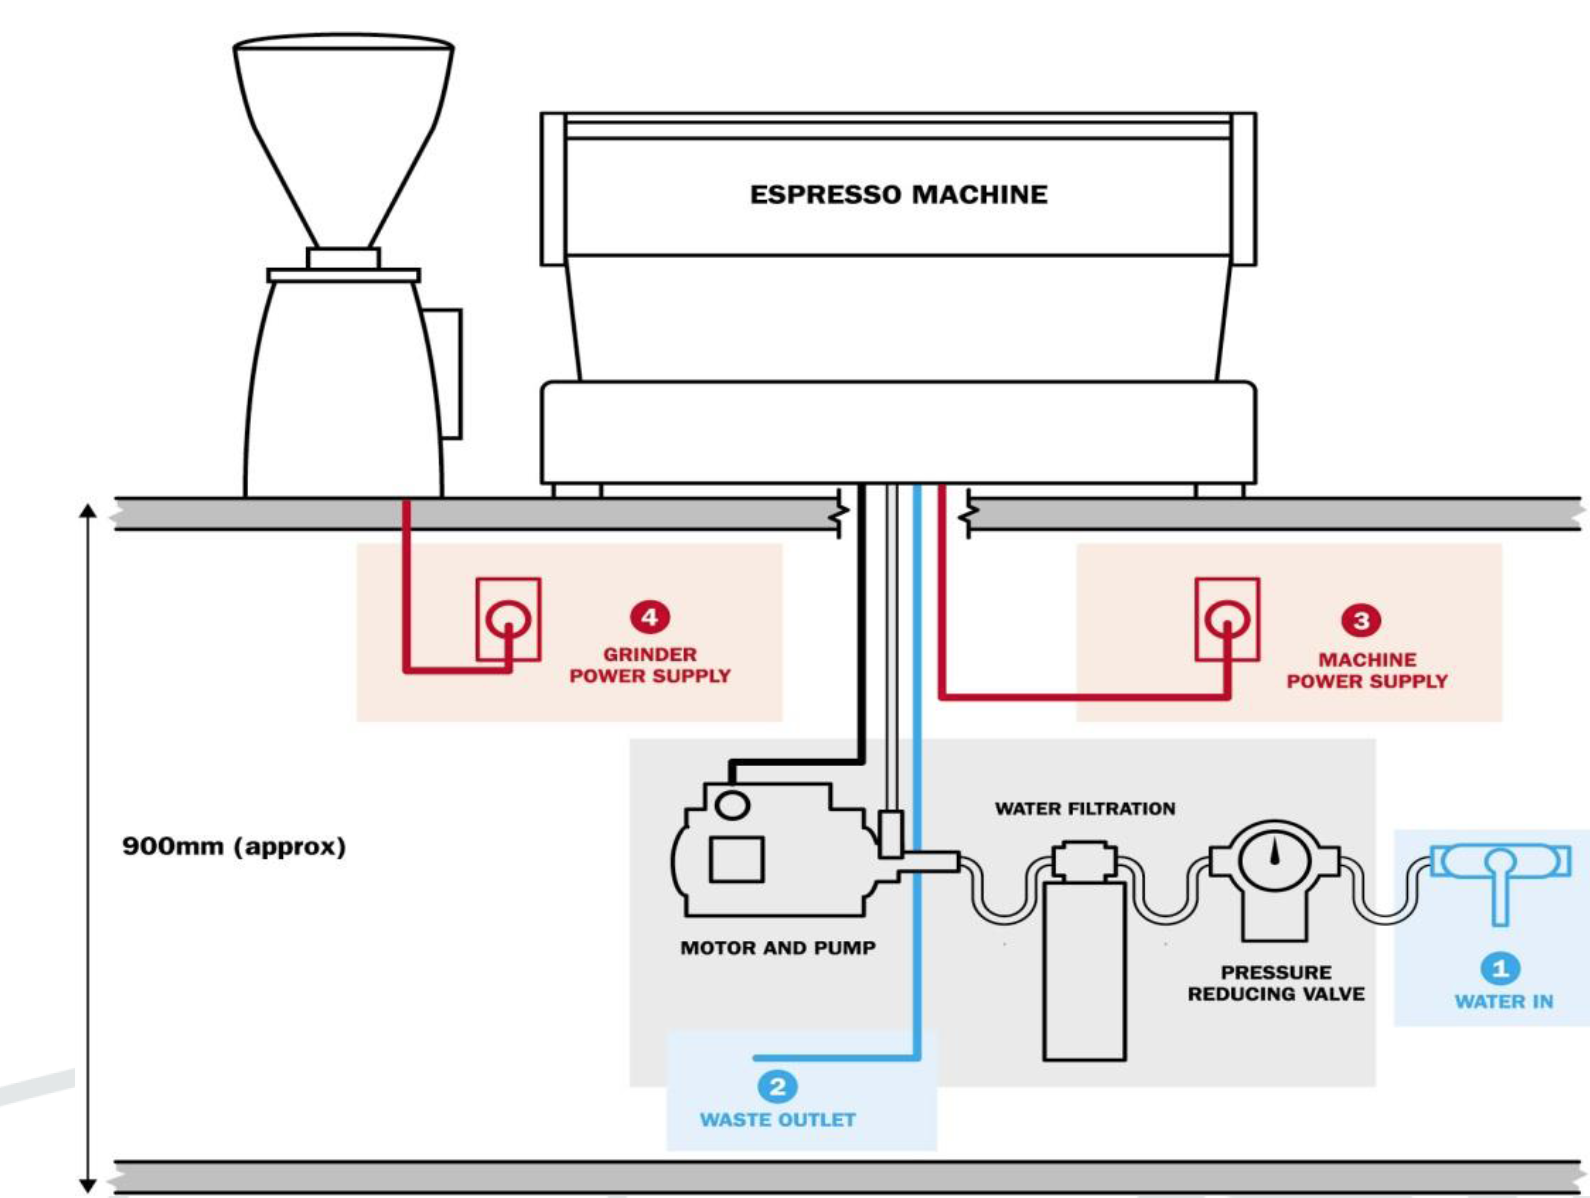 Installation Requirements Espresso Machine Talk Coffee 3 Phase Electric Heating Wiring Diagram